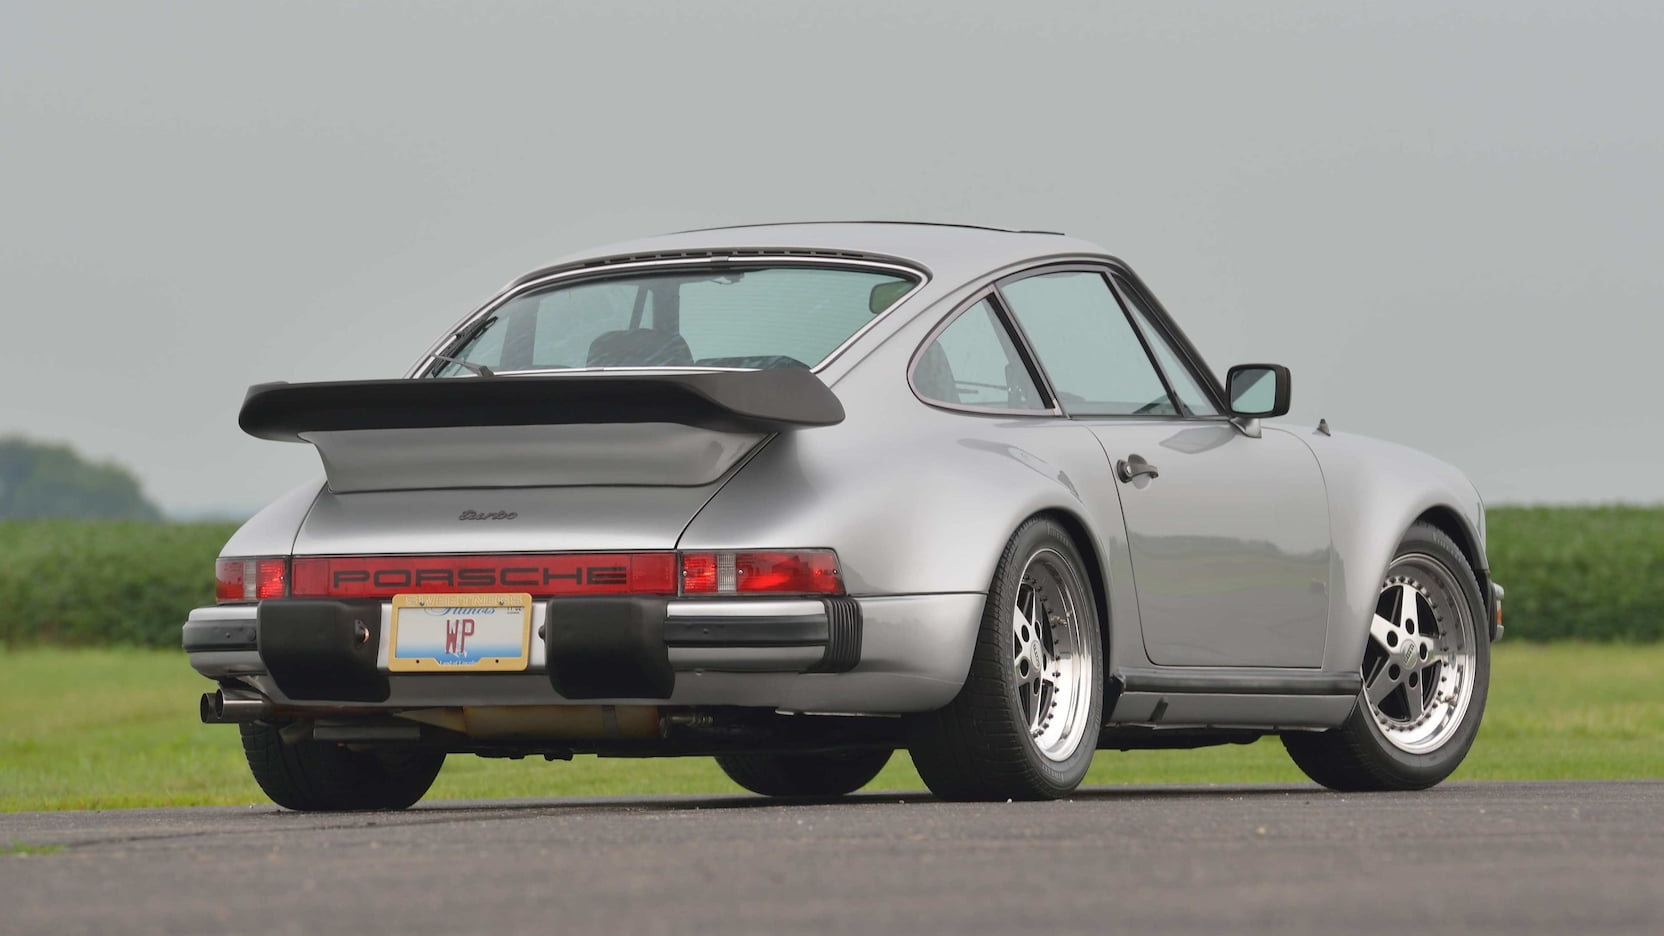 Walter Payton's 1979 Porsche 930 Turbo rear 3/4